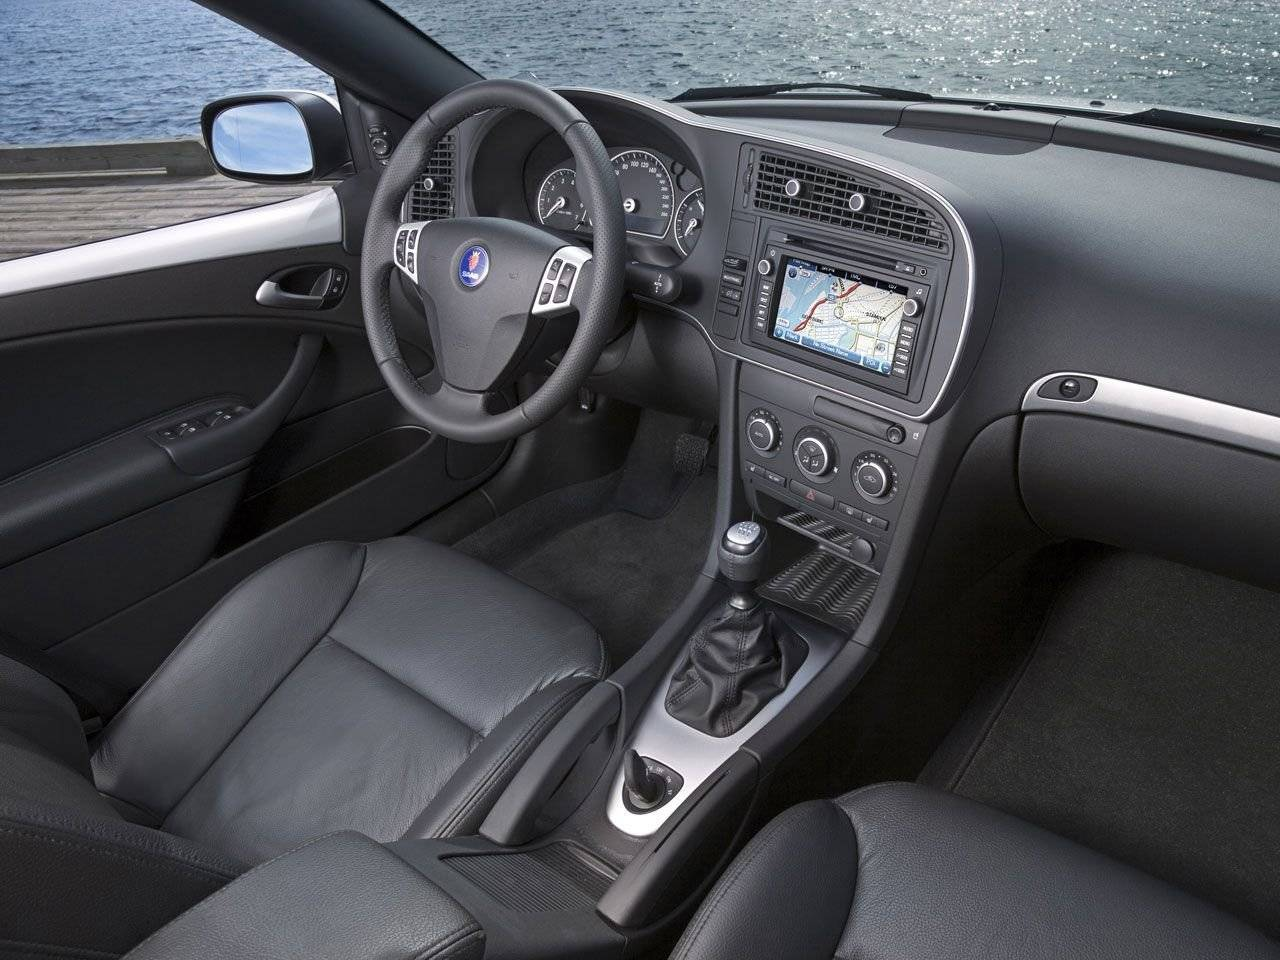 vernieuwde saab 9 3 sport sedan en sportcombi autonieuws. Black Bedroom Furniture Sets. Home Design Ideas